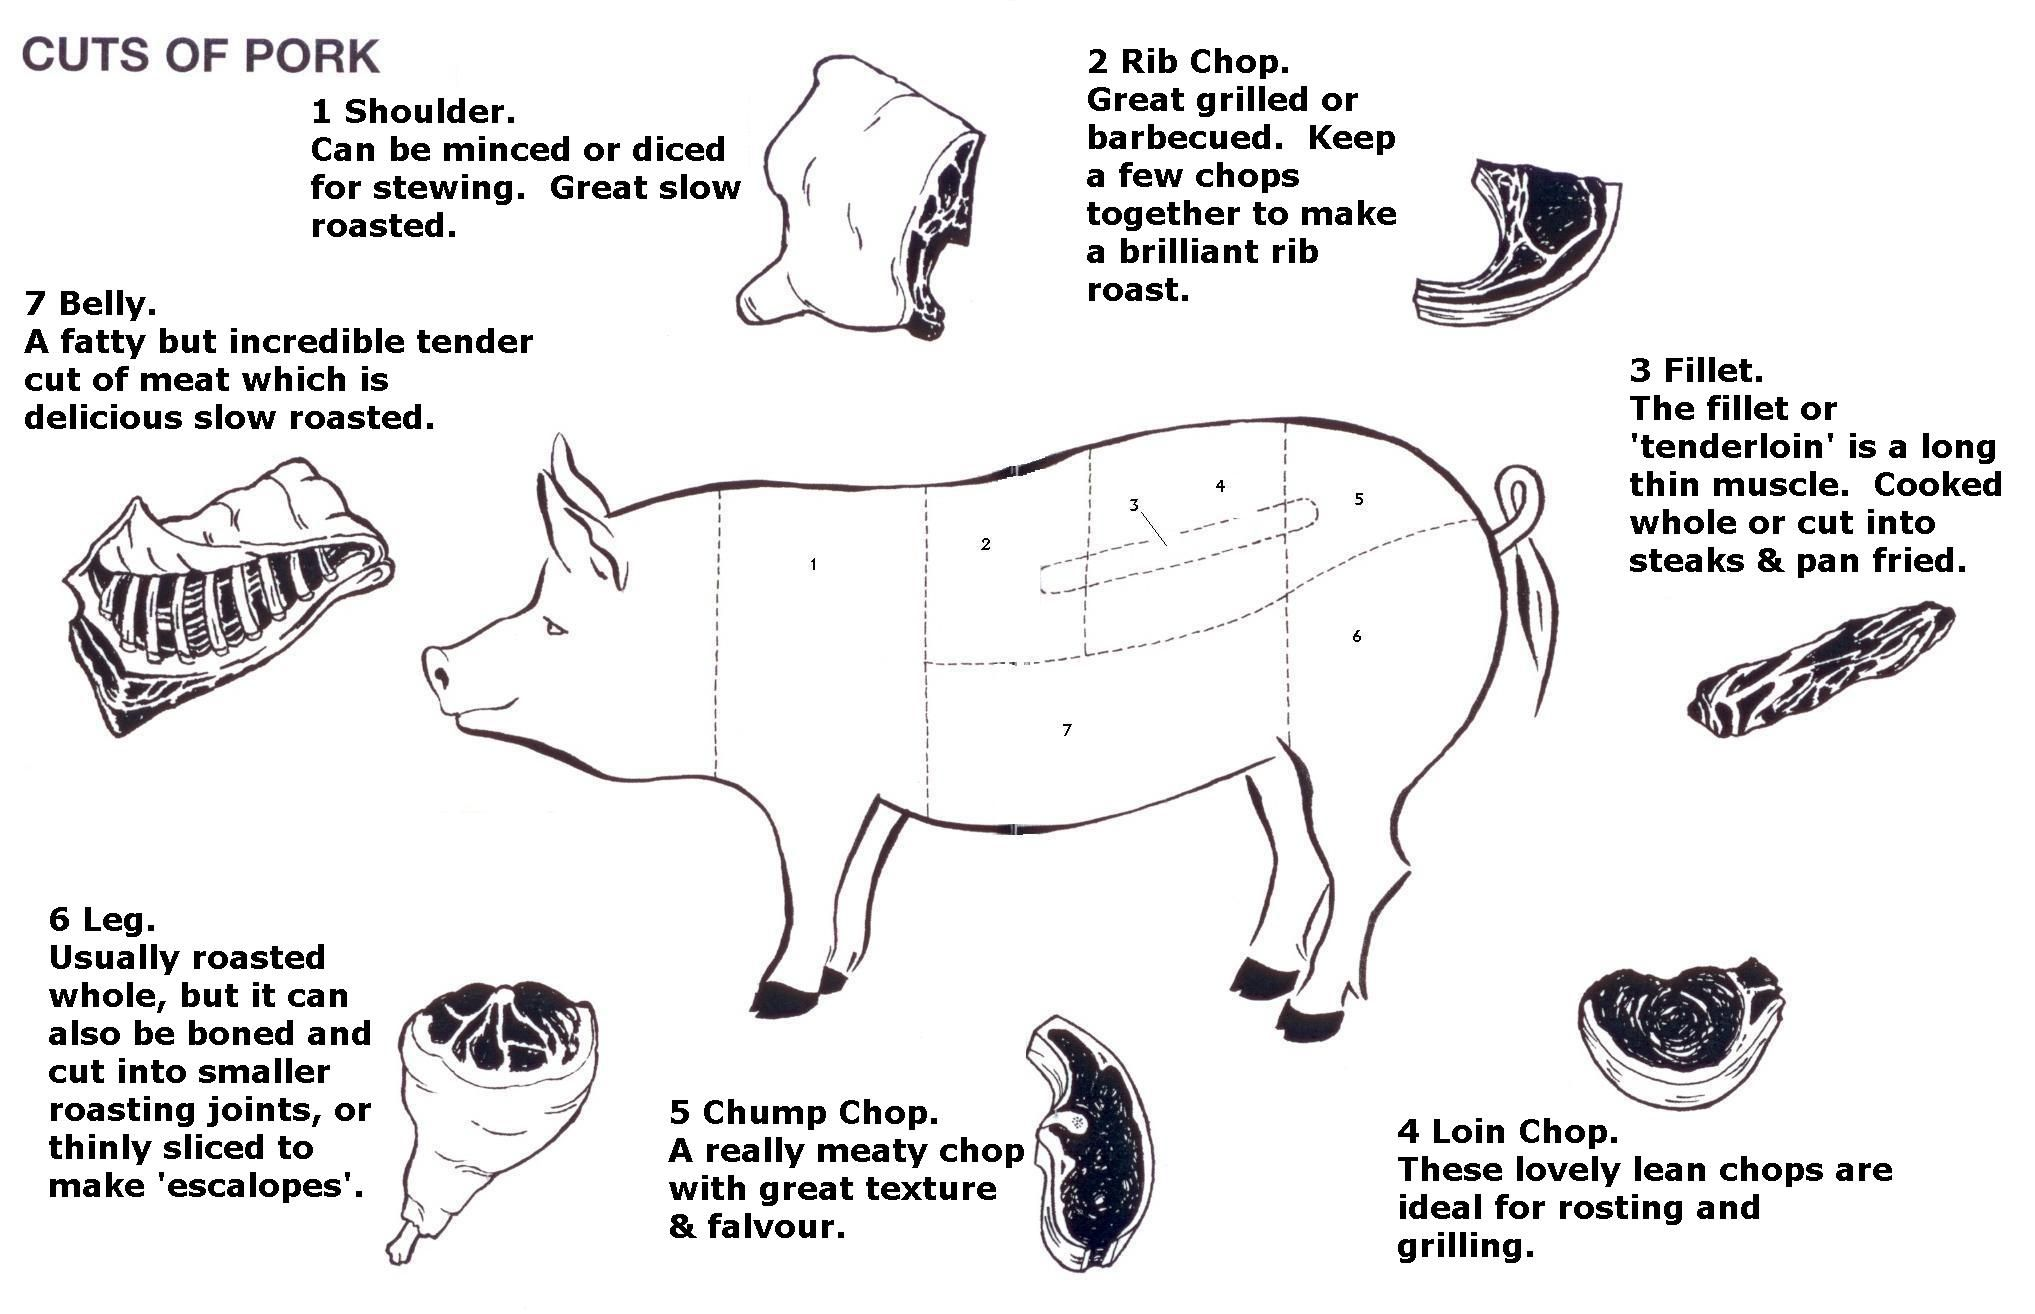 1994045a3e629442a9cdc8955ef0ddad diagram of cuts of pork photo courtesy of beechtreefarm org